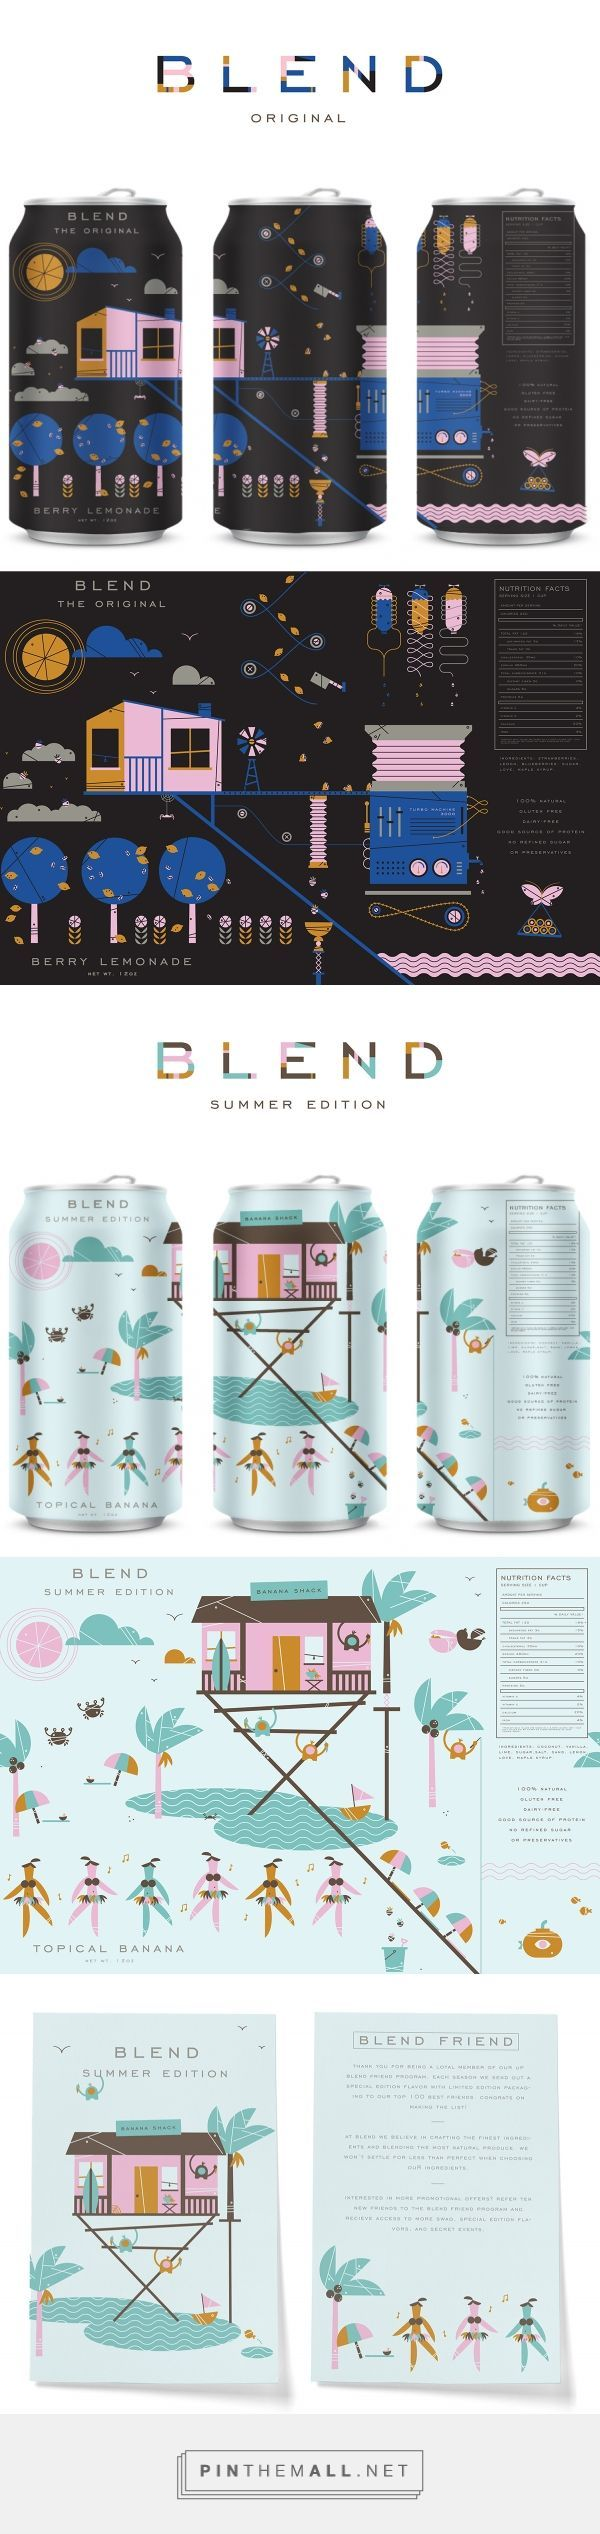 Blend Beverage Packaging by Sydney Goldstein | Fivestar Branding Agency – Design and Branding Agency & Curated Inspiration Gallery